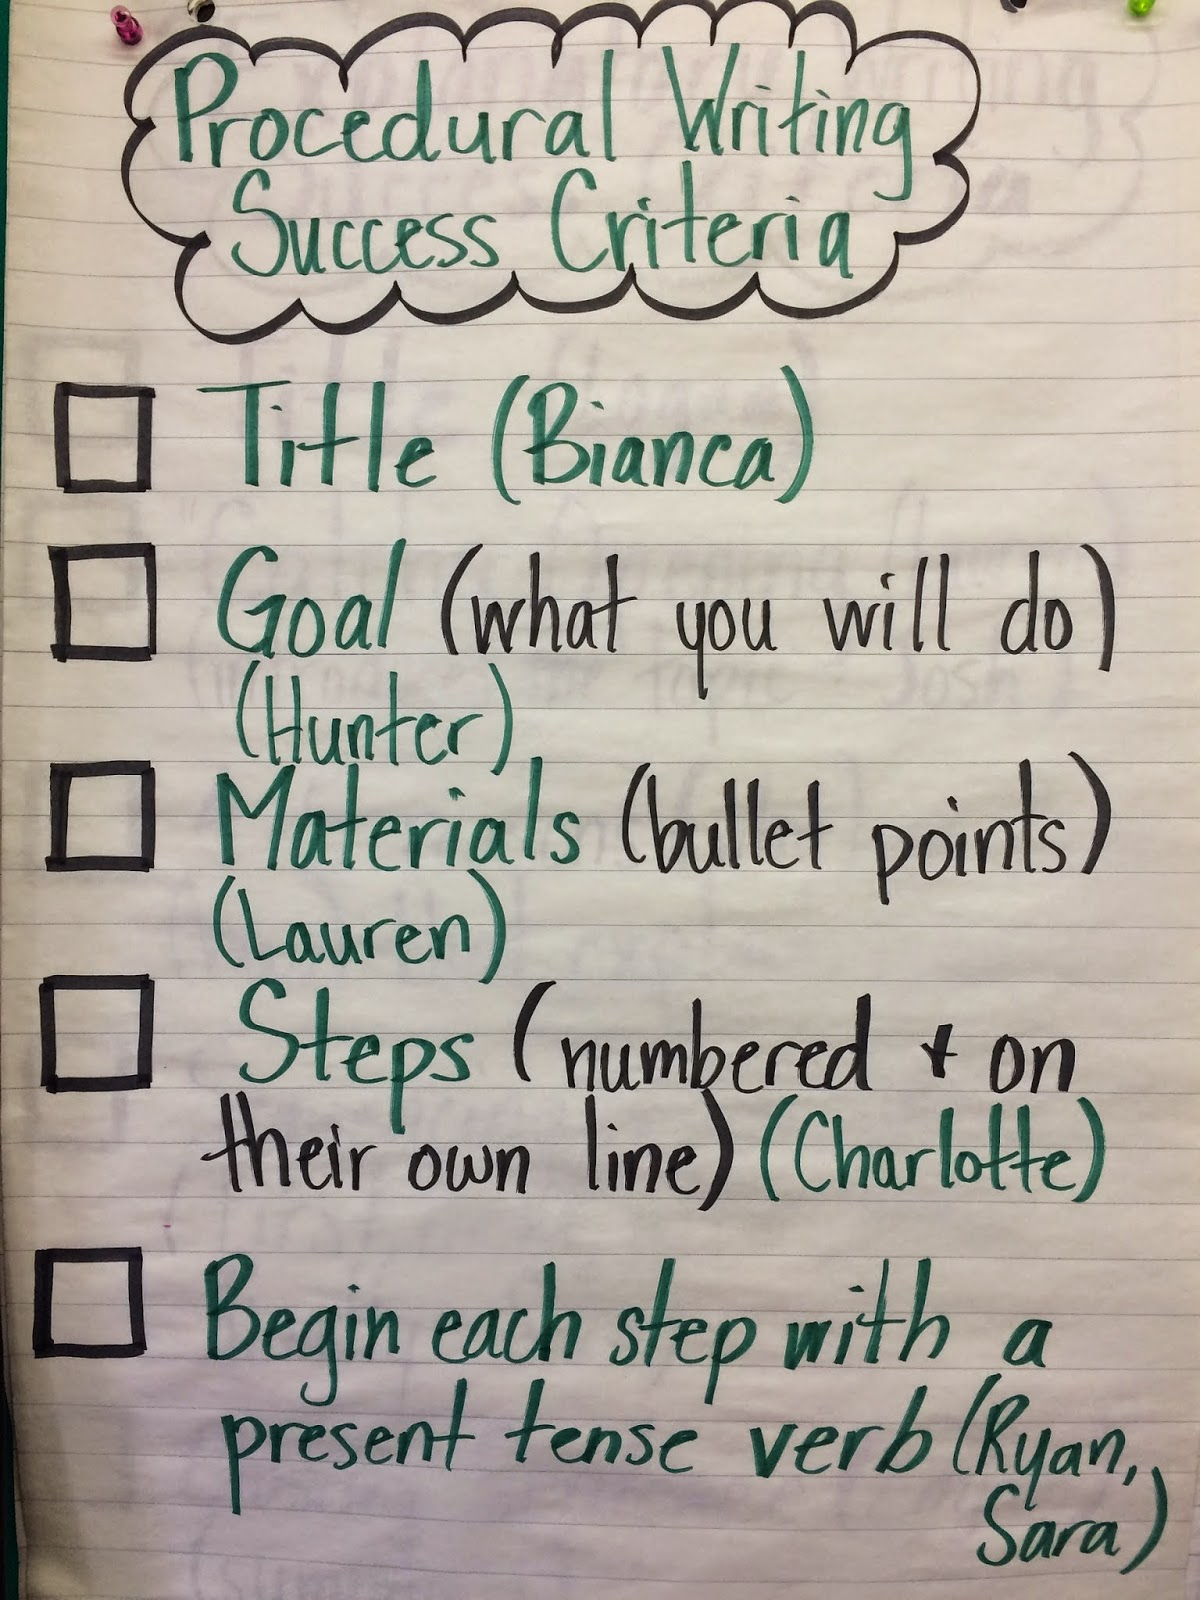 topics for procedural writing What topics would be good for writing a narrative procedure  good procedural writing topics source(s):.